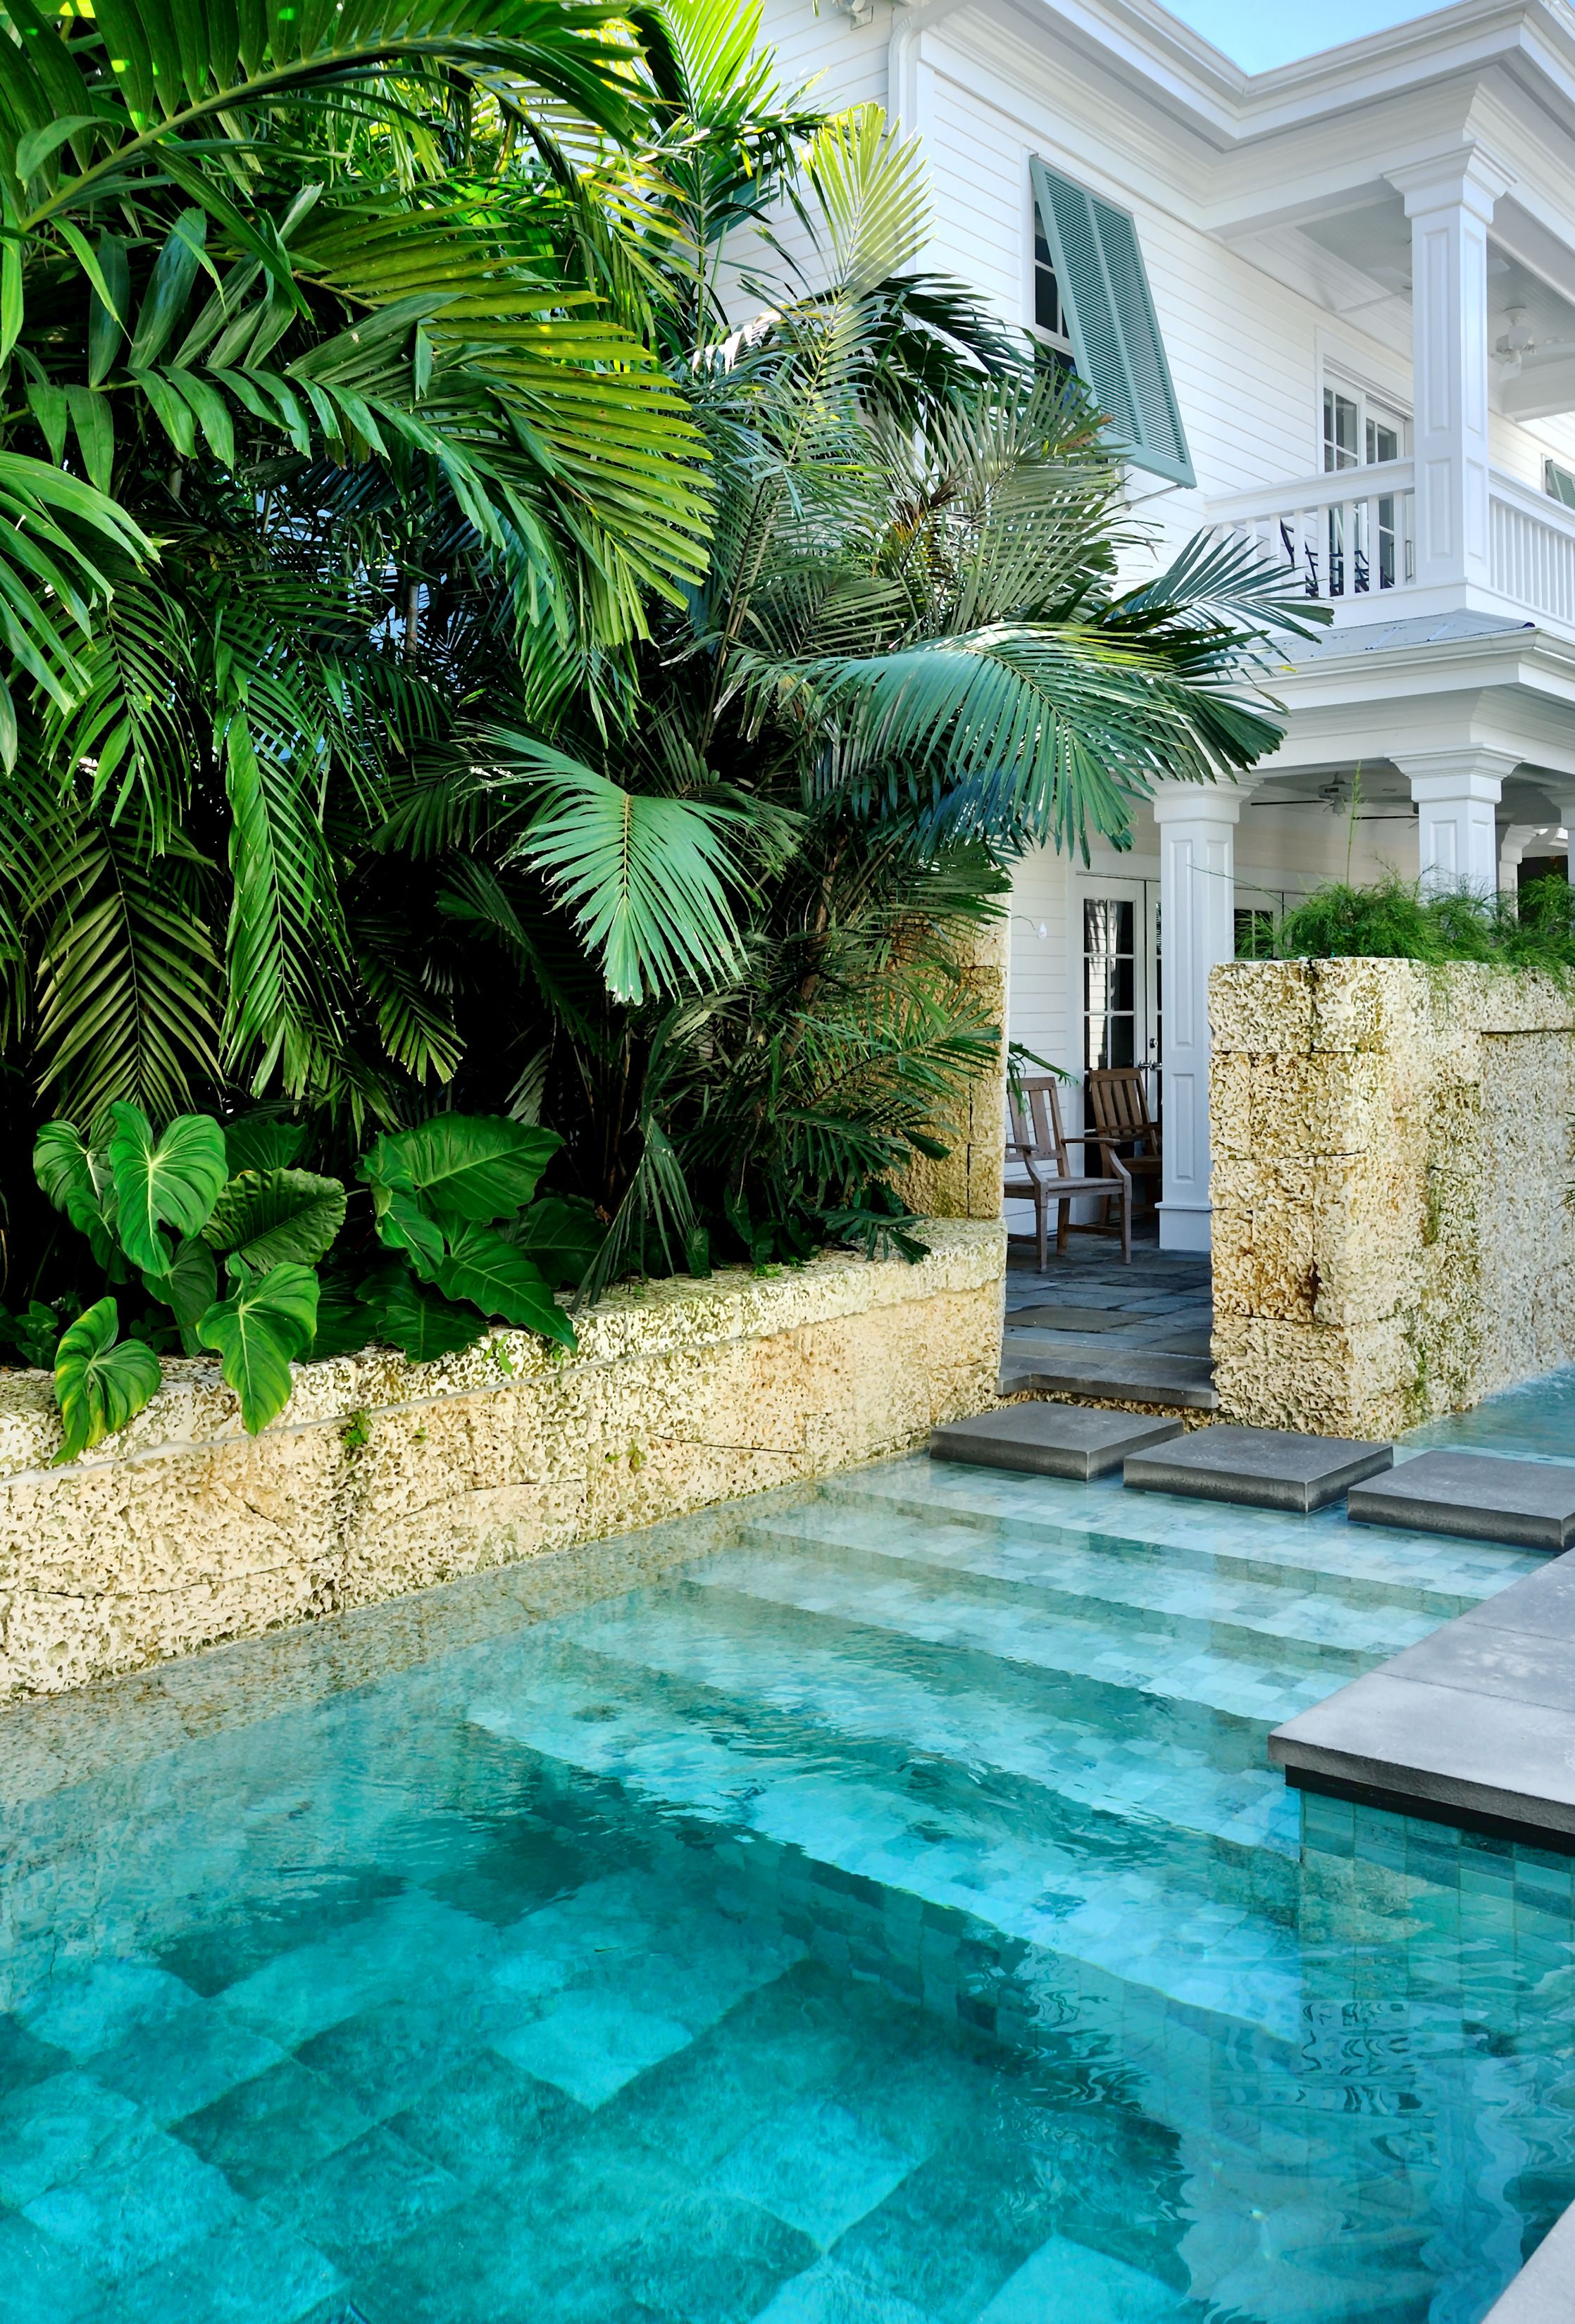 Craig reynolds key west landscape design hardscape for Plunge pool design uk